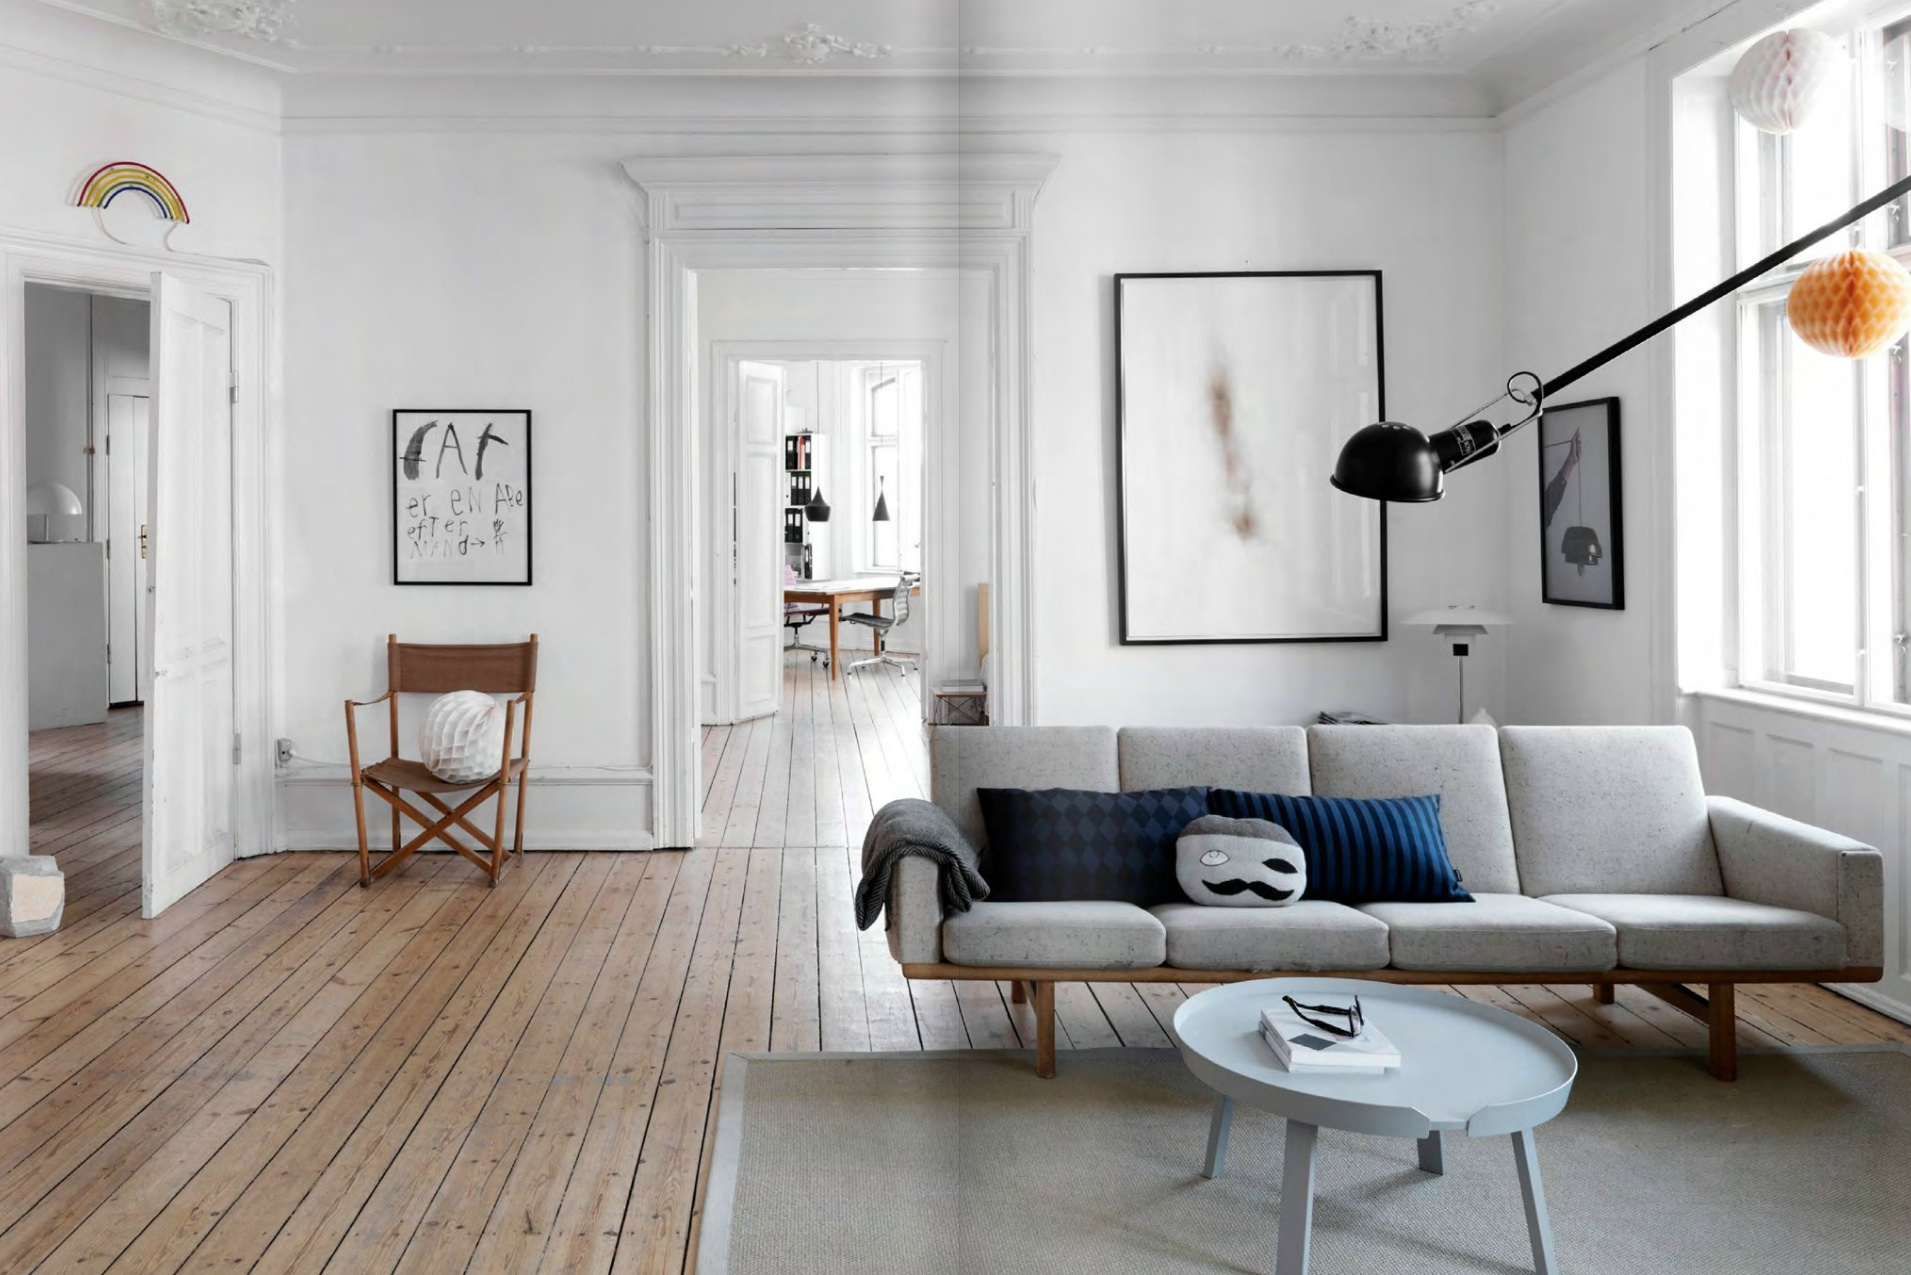 Scandinavian historical redesign dailyscandinavian for Scandinavian design ideas